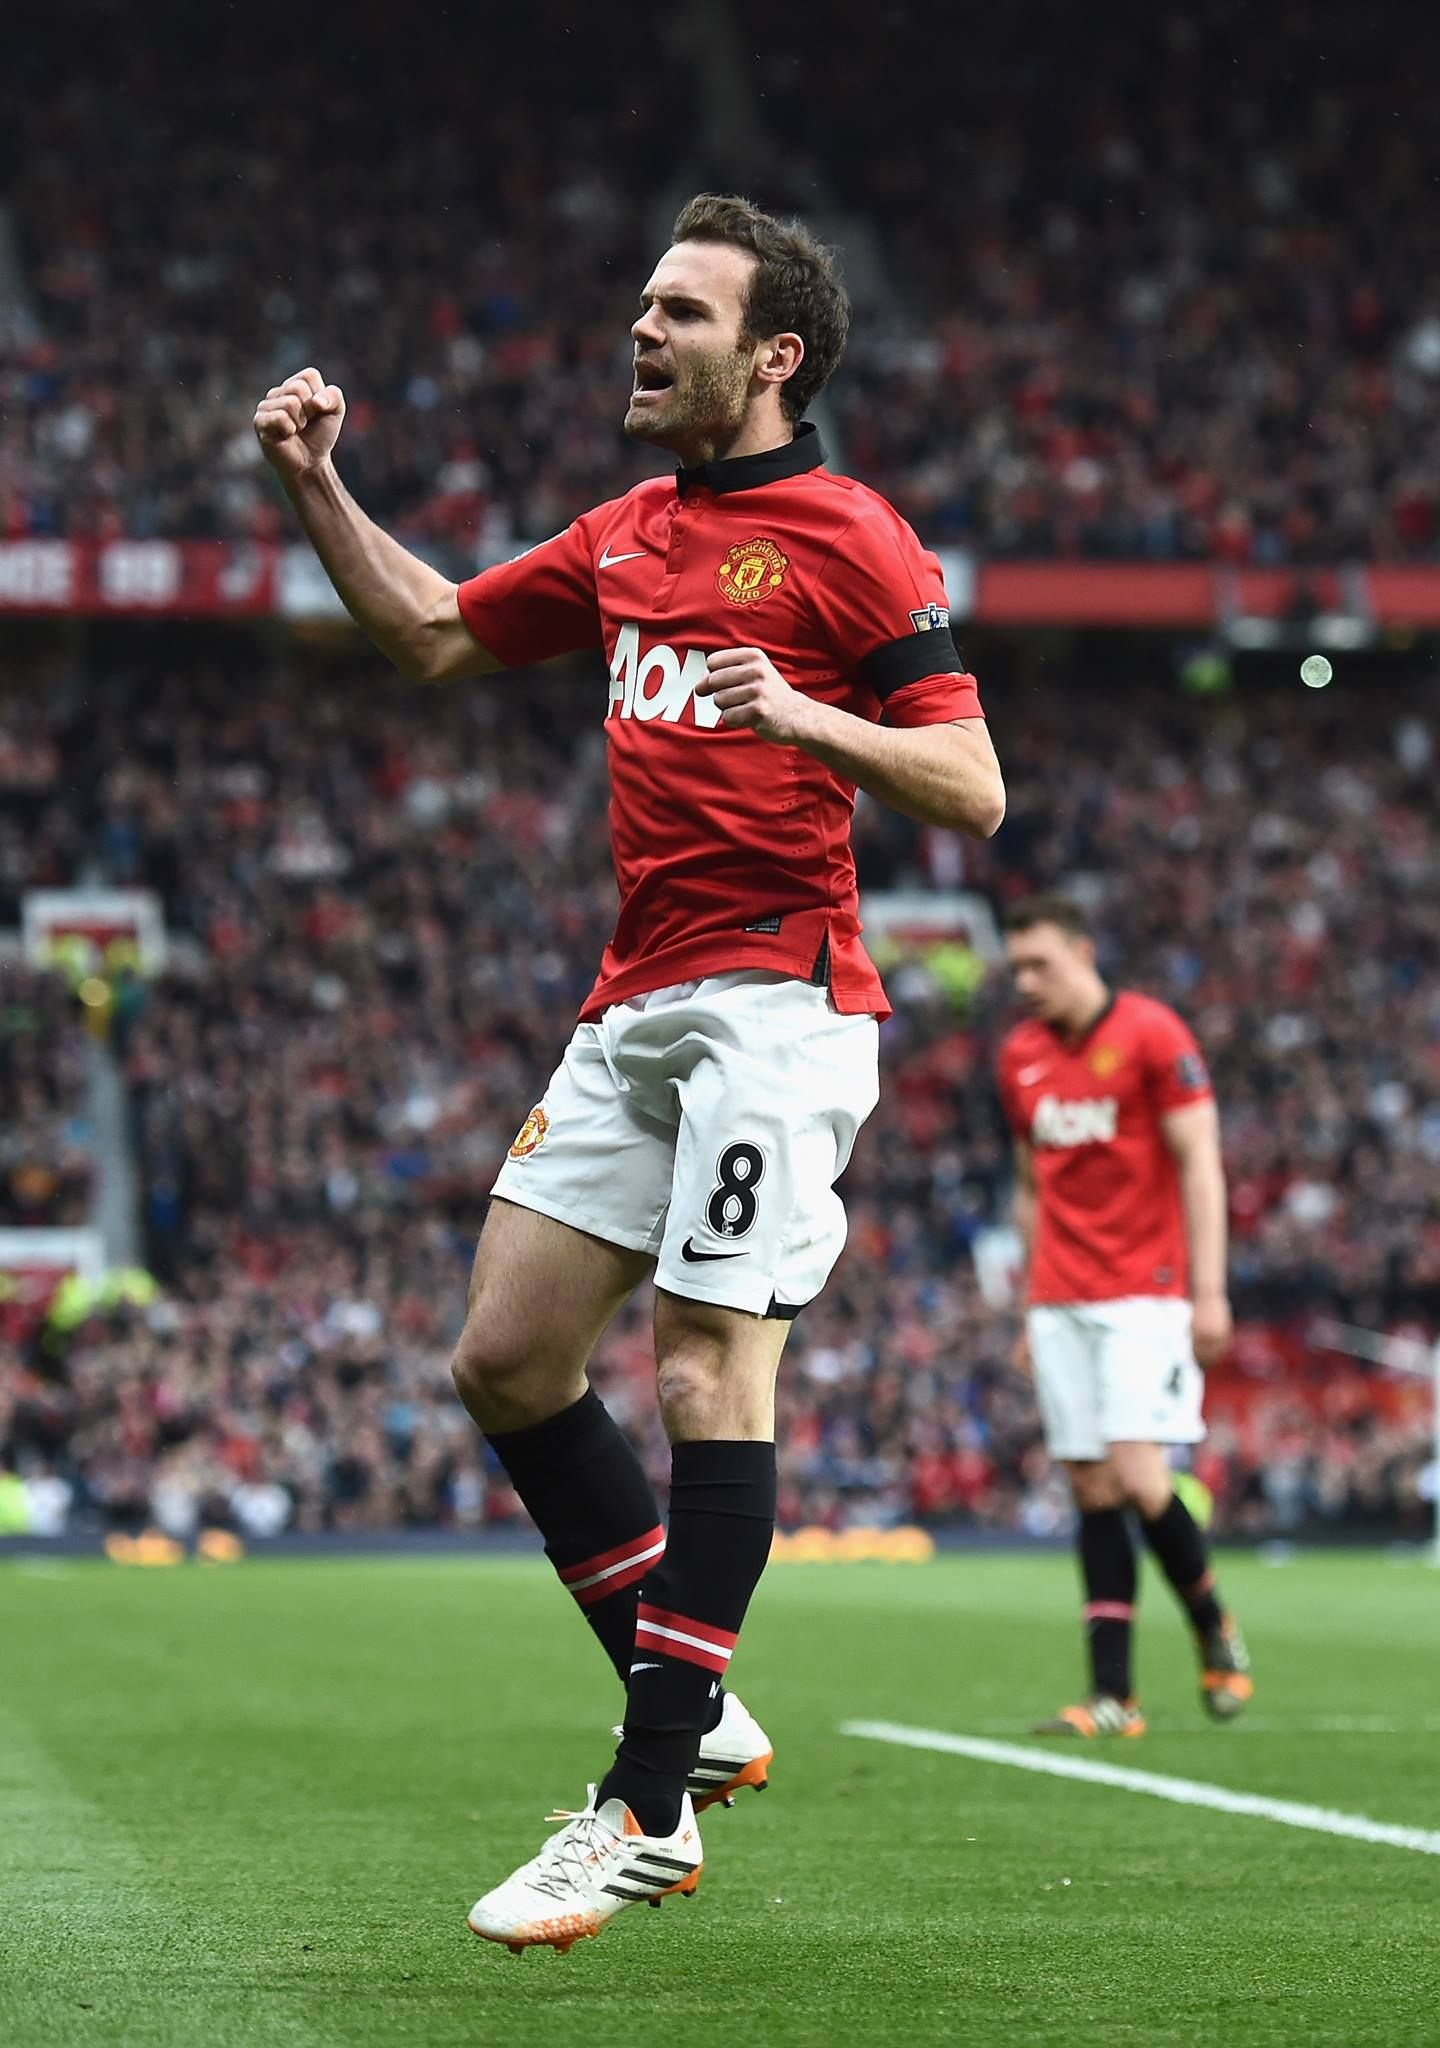 Timeline Photos Manchester United Facebook Manchester United Football Manchester United Football Club Manchester United